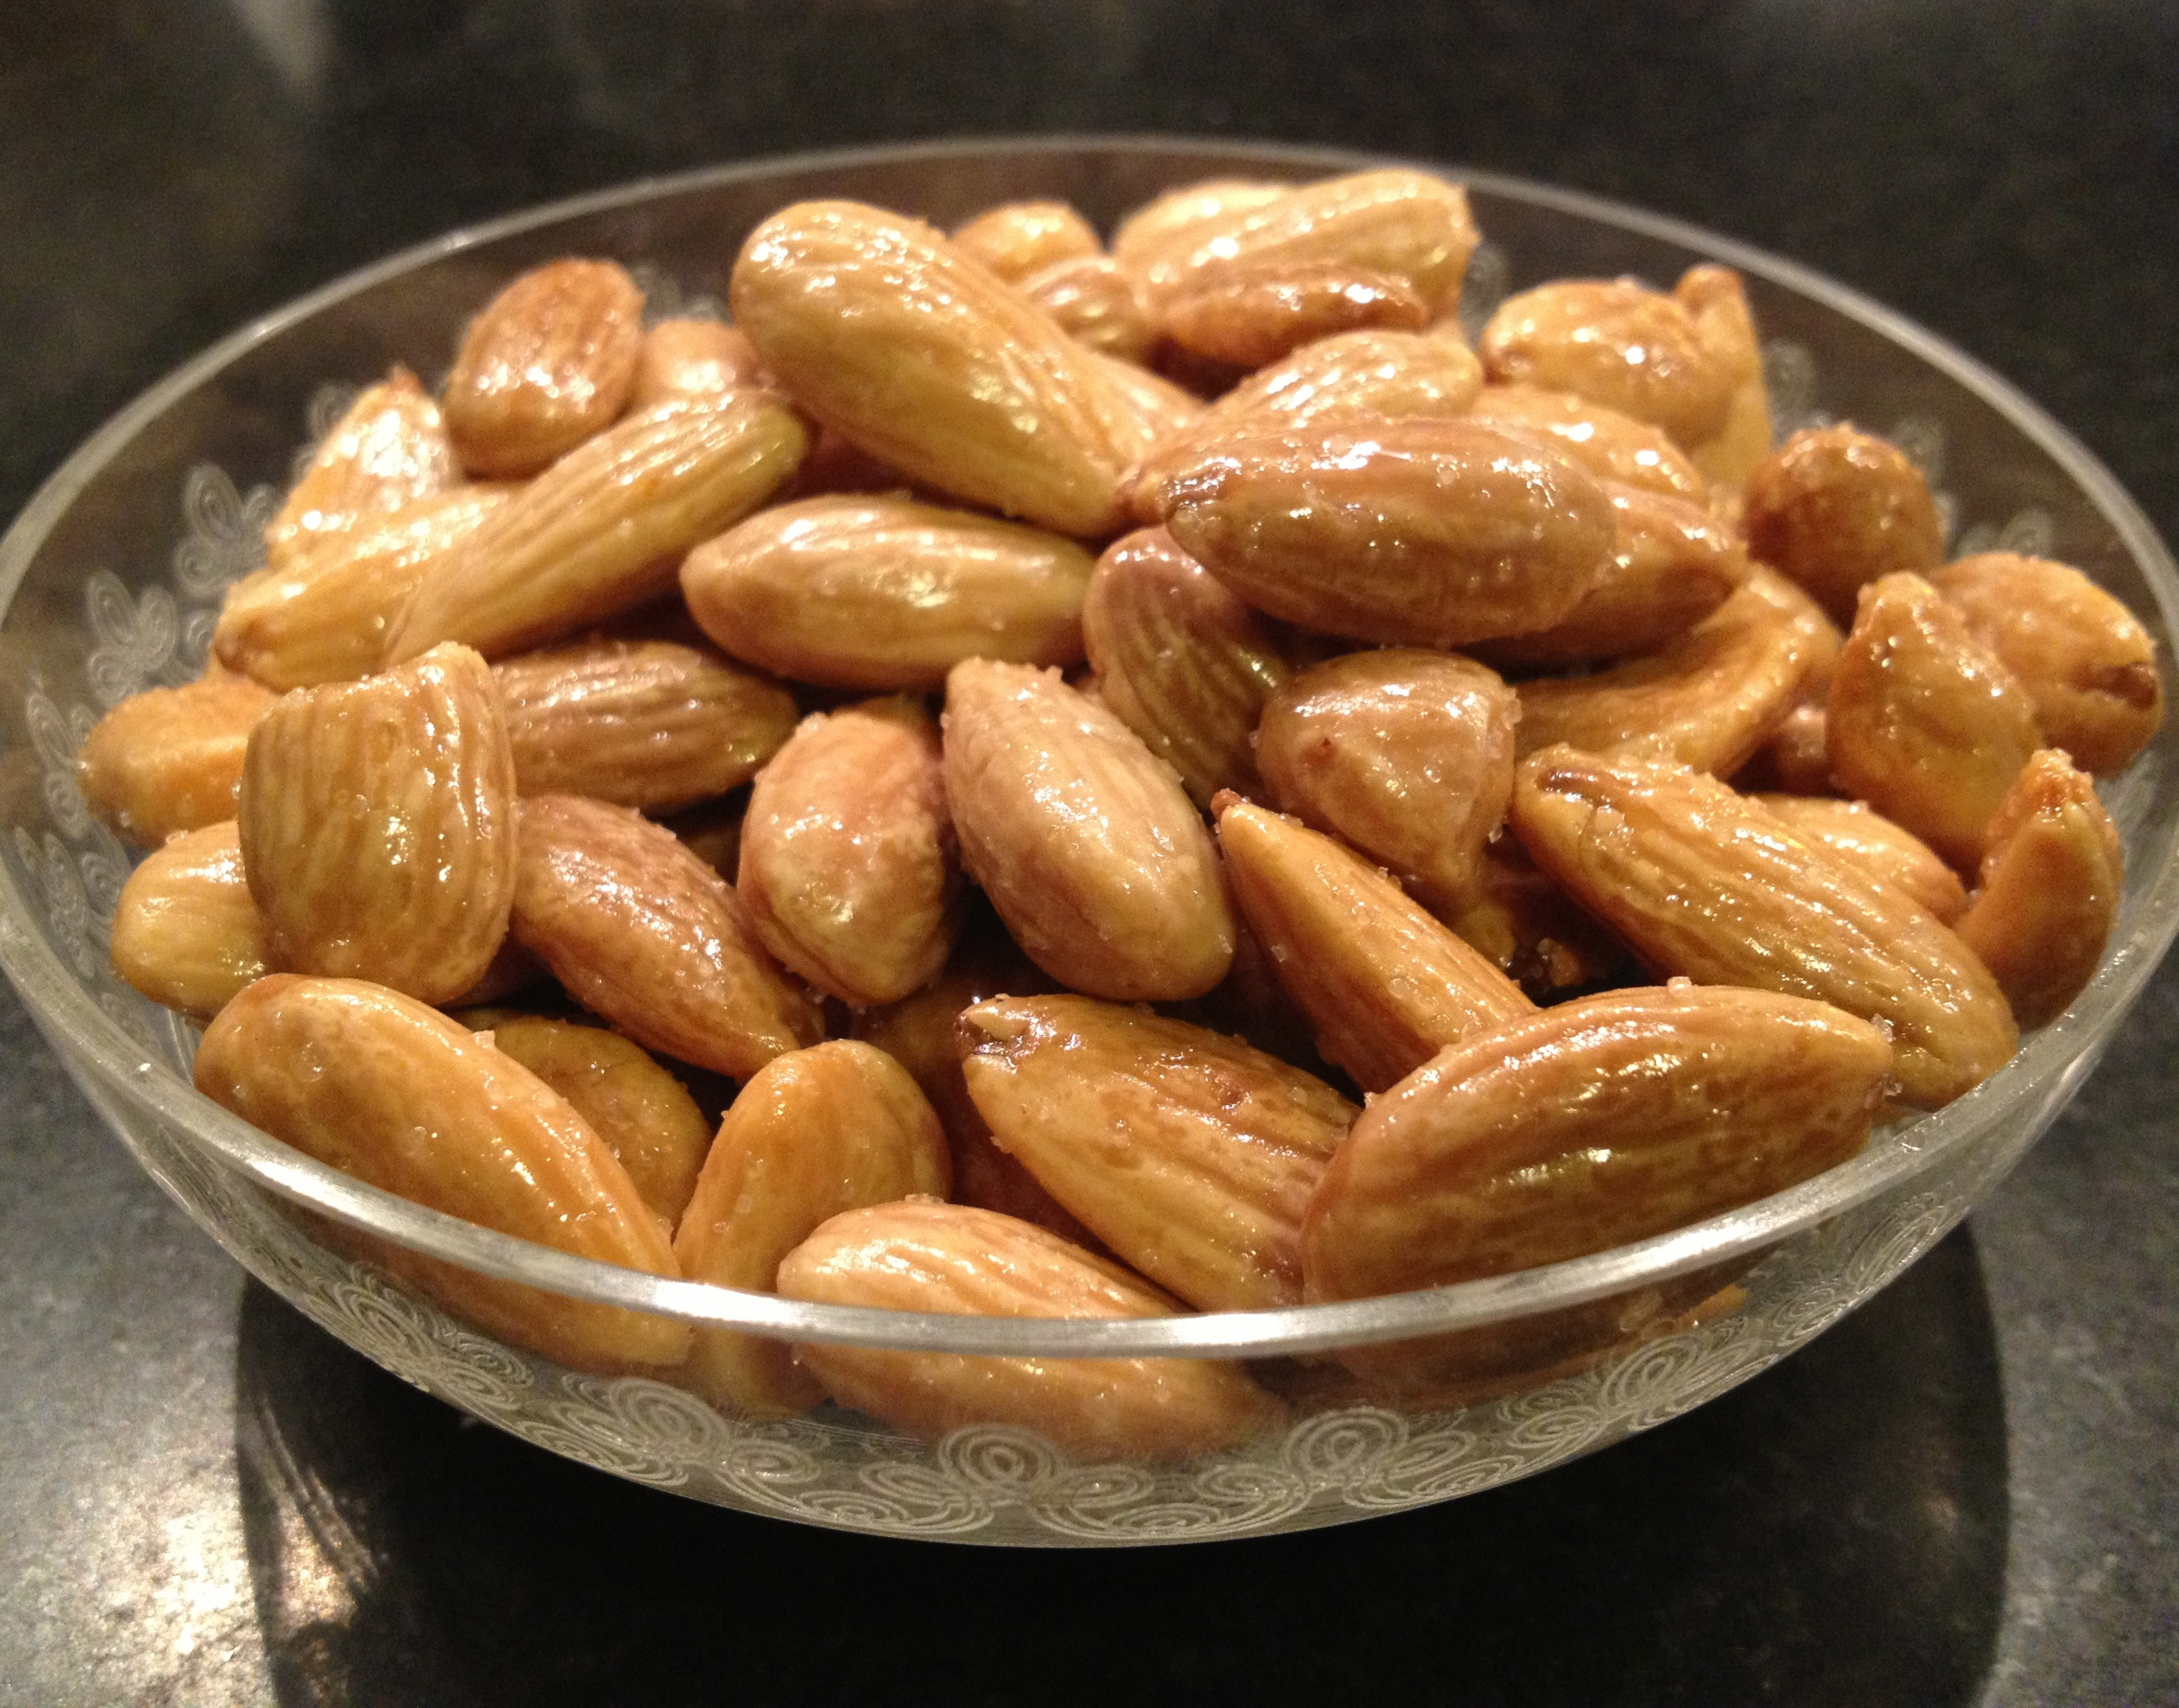 Roasted almonds in a glass crystal bowl.